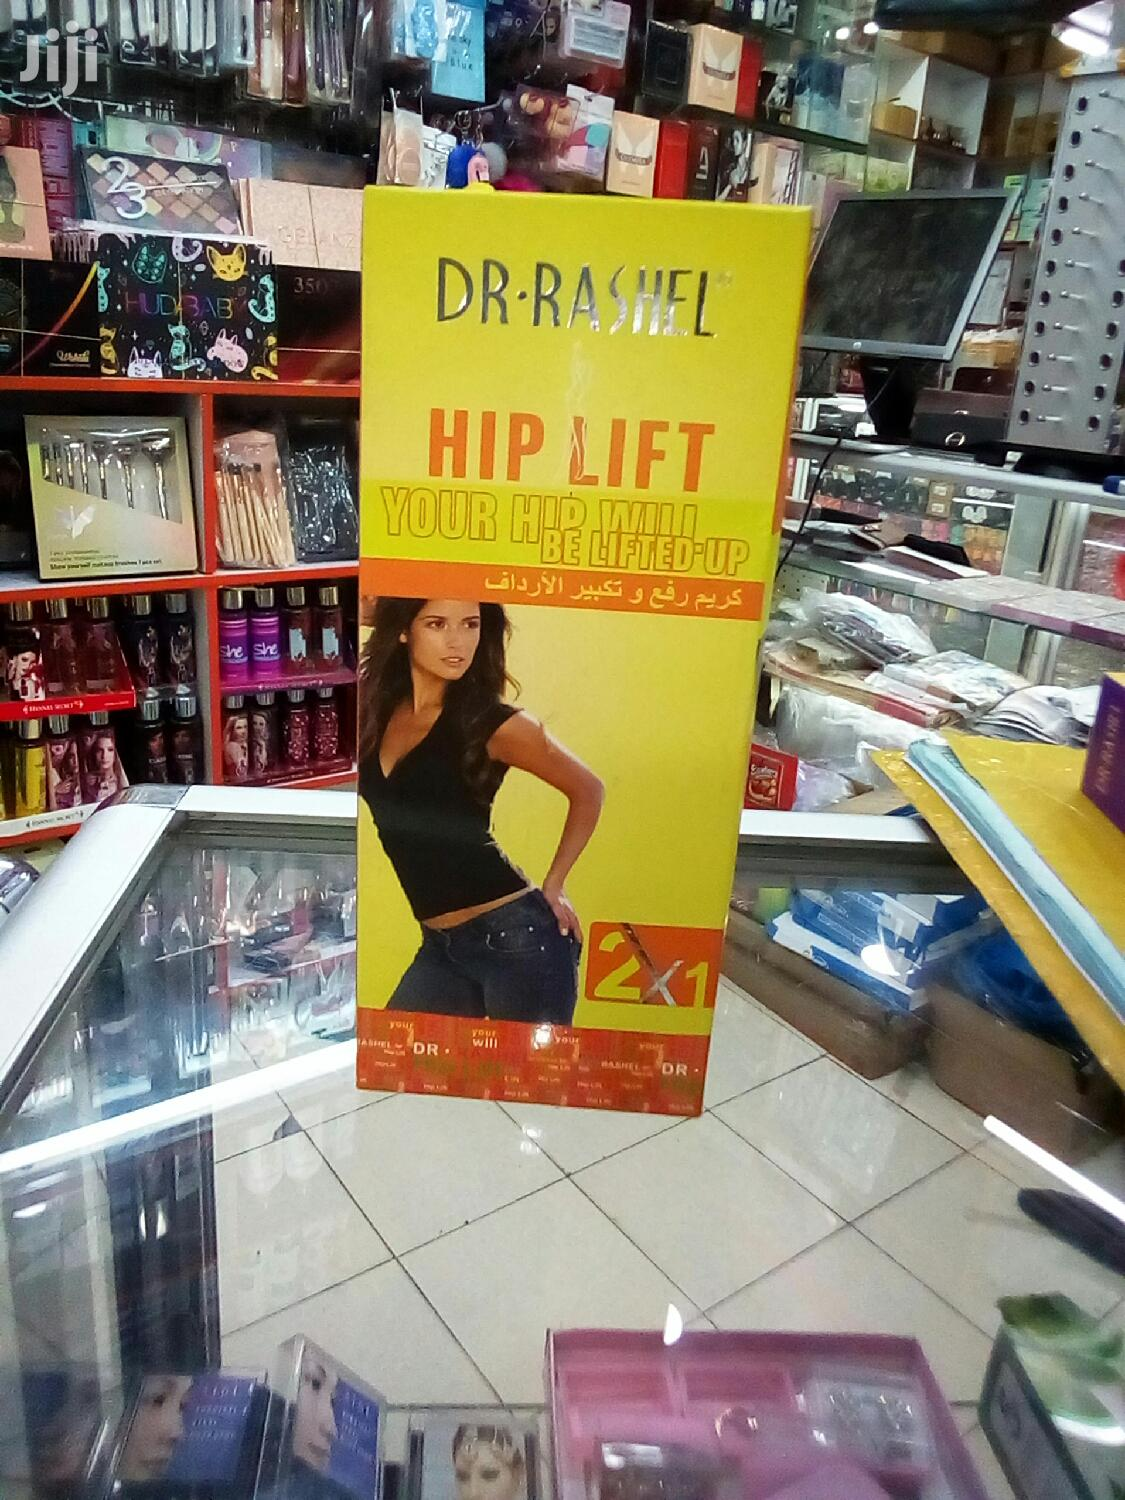 Dr Rashel Hip Lift Cream